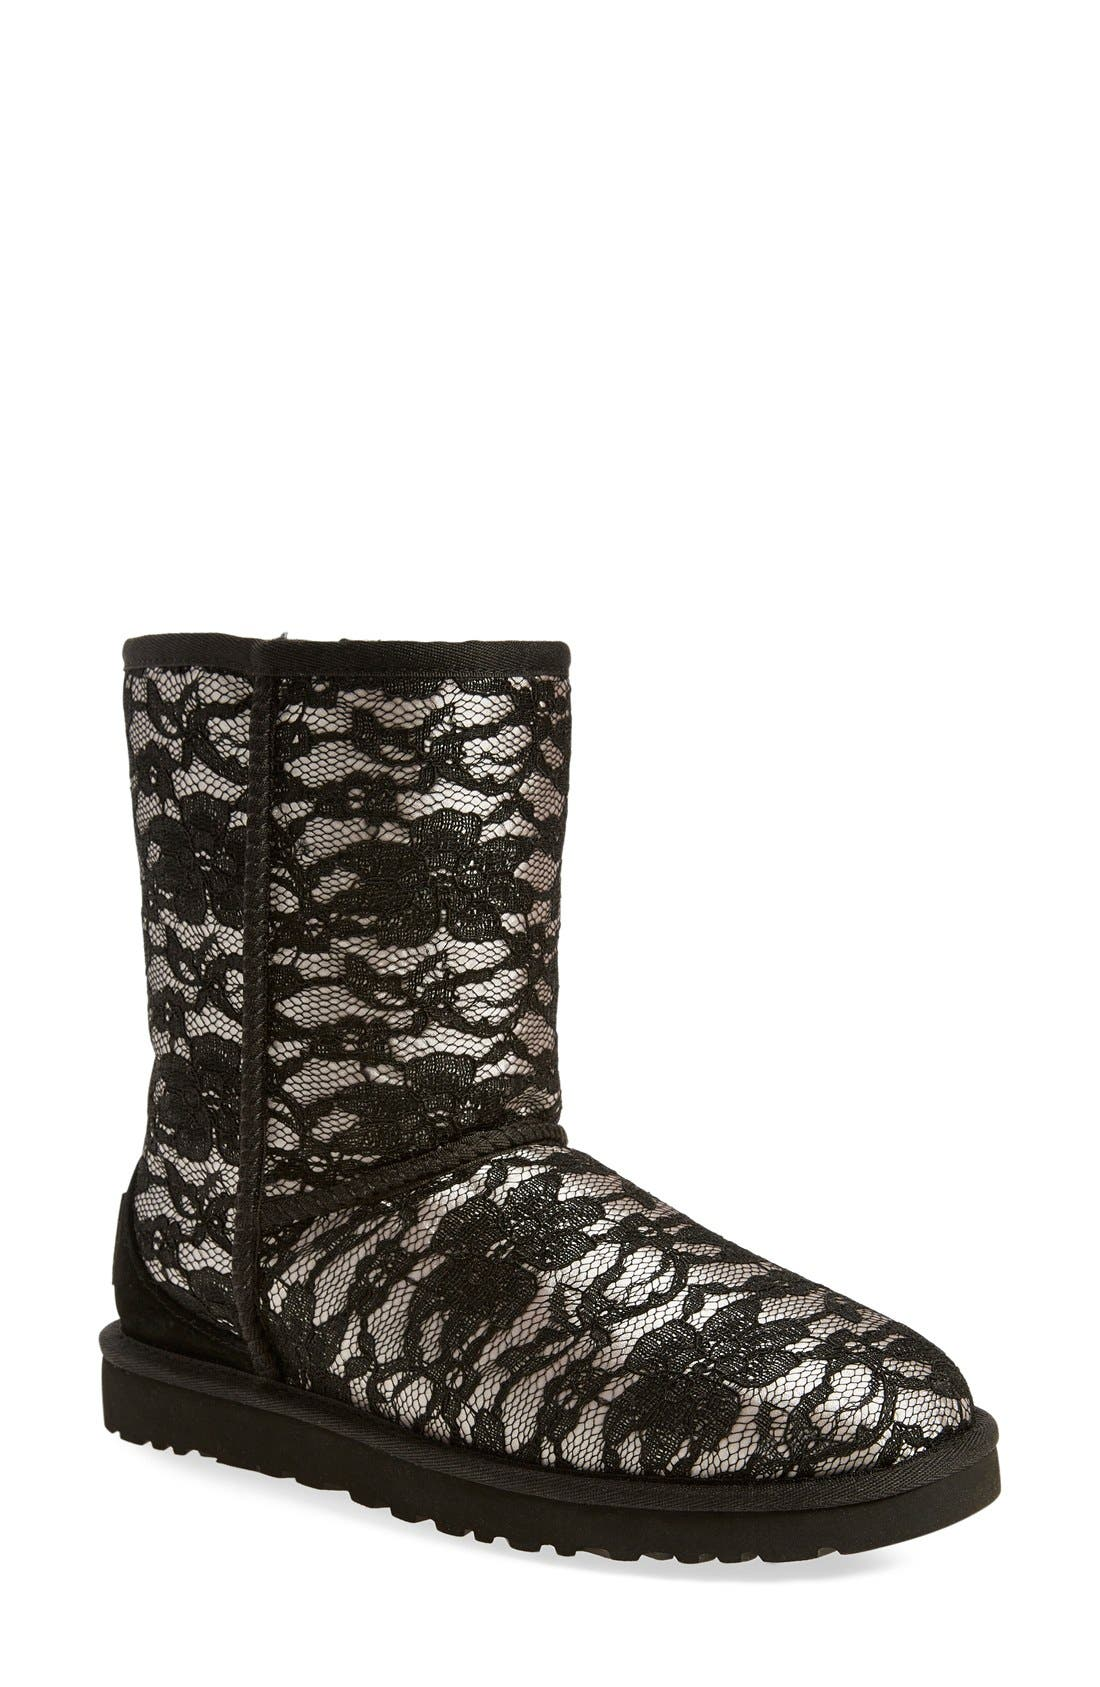 Alternate Image 1 Selected - UGG® 'Classic Short Antoinette' Boot (Women)